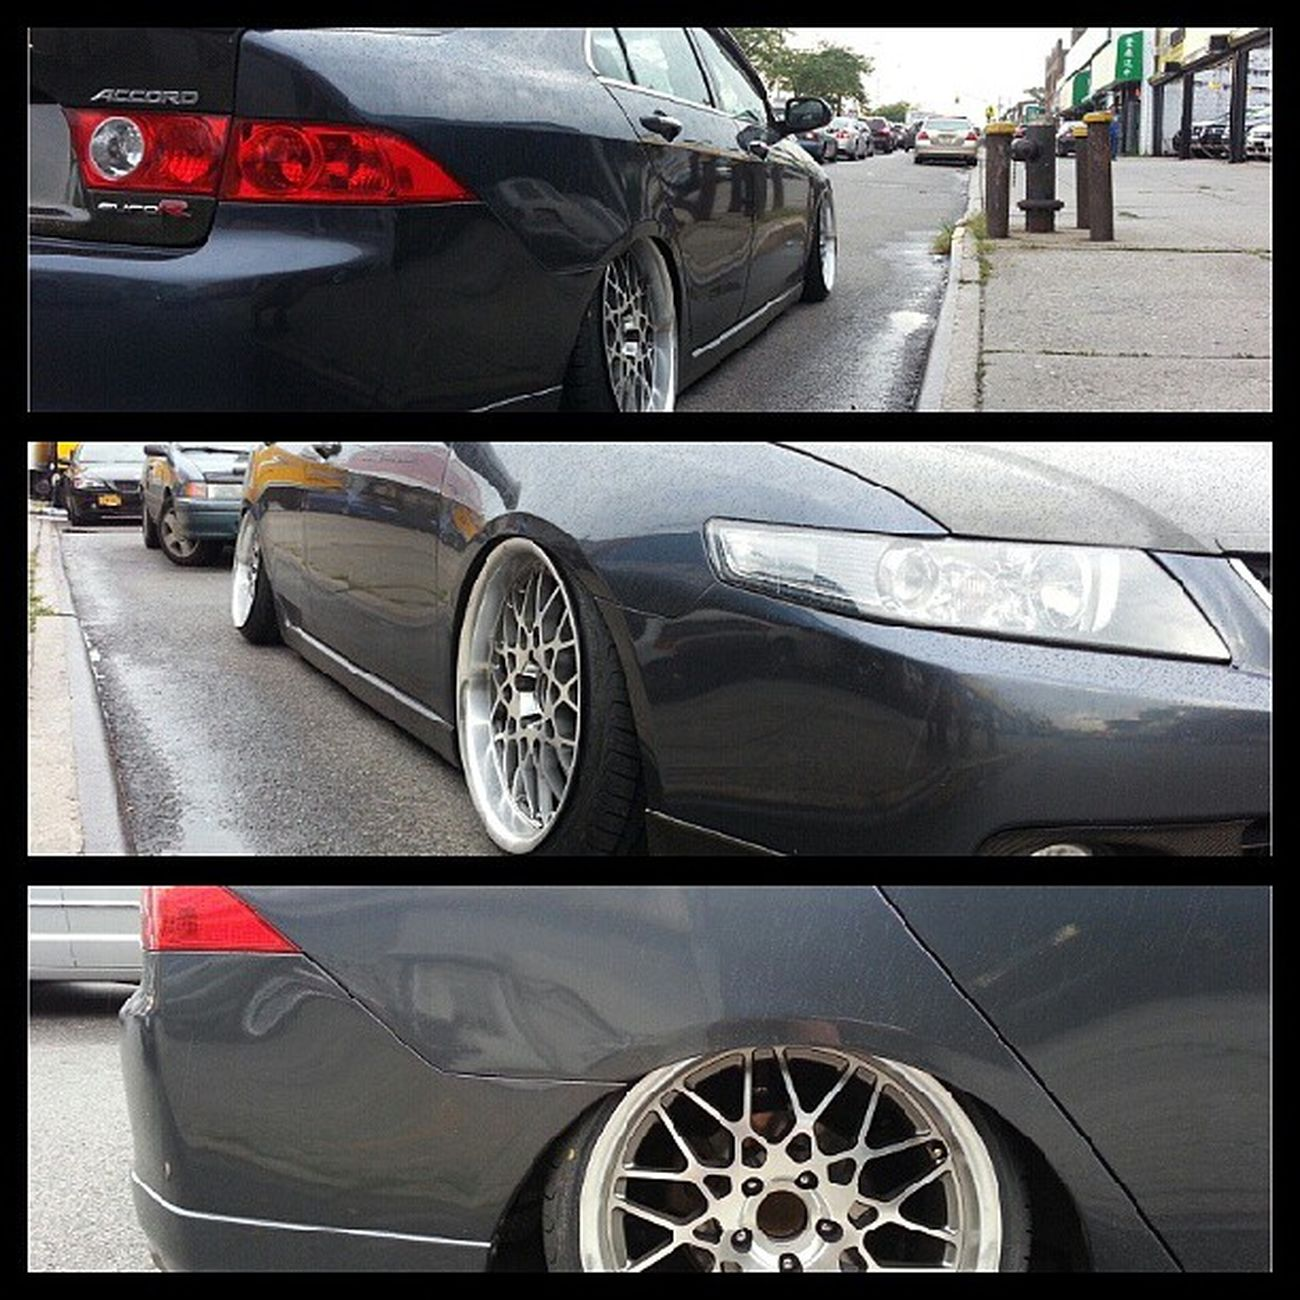 Sitting low. Nycalive Projectjdm Tucking Lowcarproblems low accord acura hondalife honda_tuning hondalove hondaday honda tsx euroaccord allstarwheels @projectjdmny lowstanceny lowstance queens woodside queensblvd